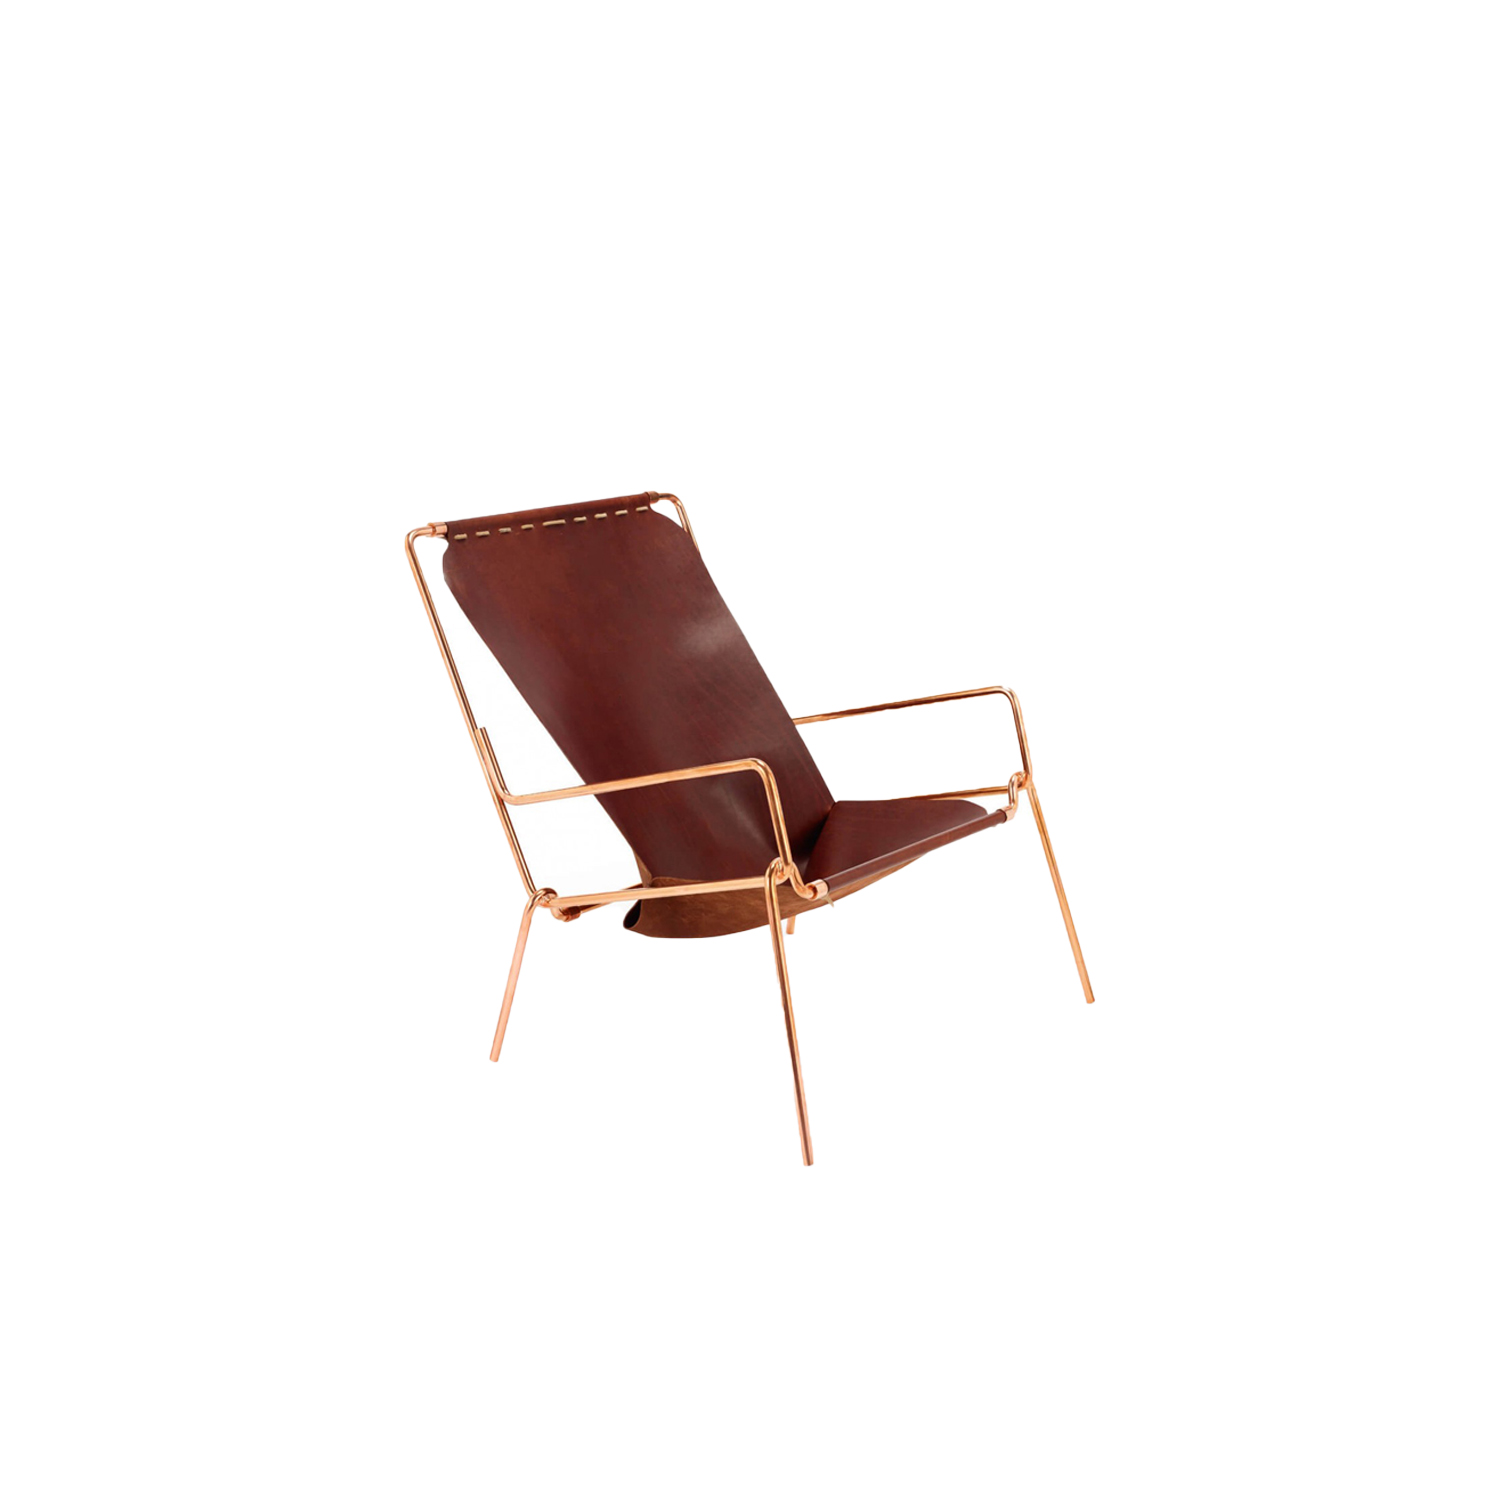 Pinch Lounge Chair - The tubular steel frame is hand bent and finished in Italy and can be disassembled to interchange the leather jackets. The chair is made out of a single piece of vegetable tanned leather and is handmade in England. This lounge chair only uses copper rivets and vegetable tanned leather cord to create a floating seat that has both the structured feel of an armchair and the relaxed feel of a hammock. The leather is changeable, different kind of covering upon request.  | Matter of Stuff